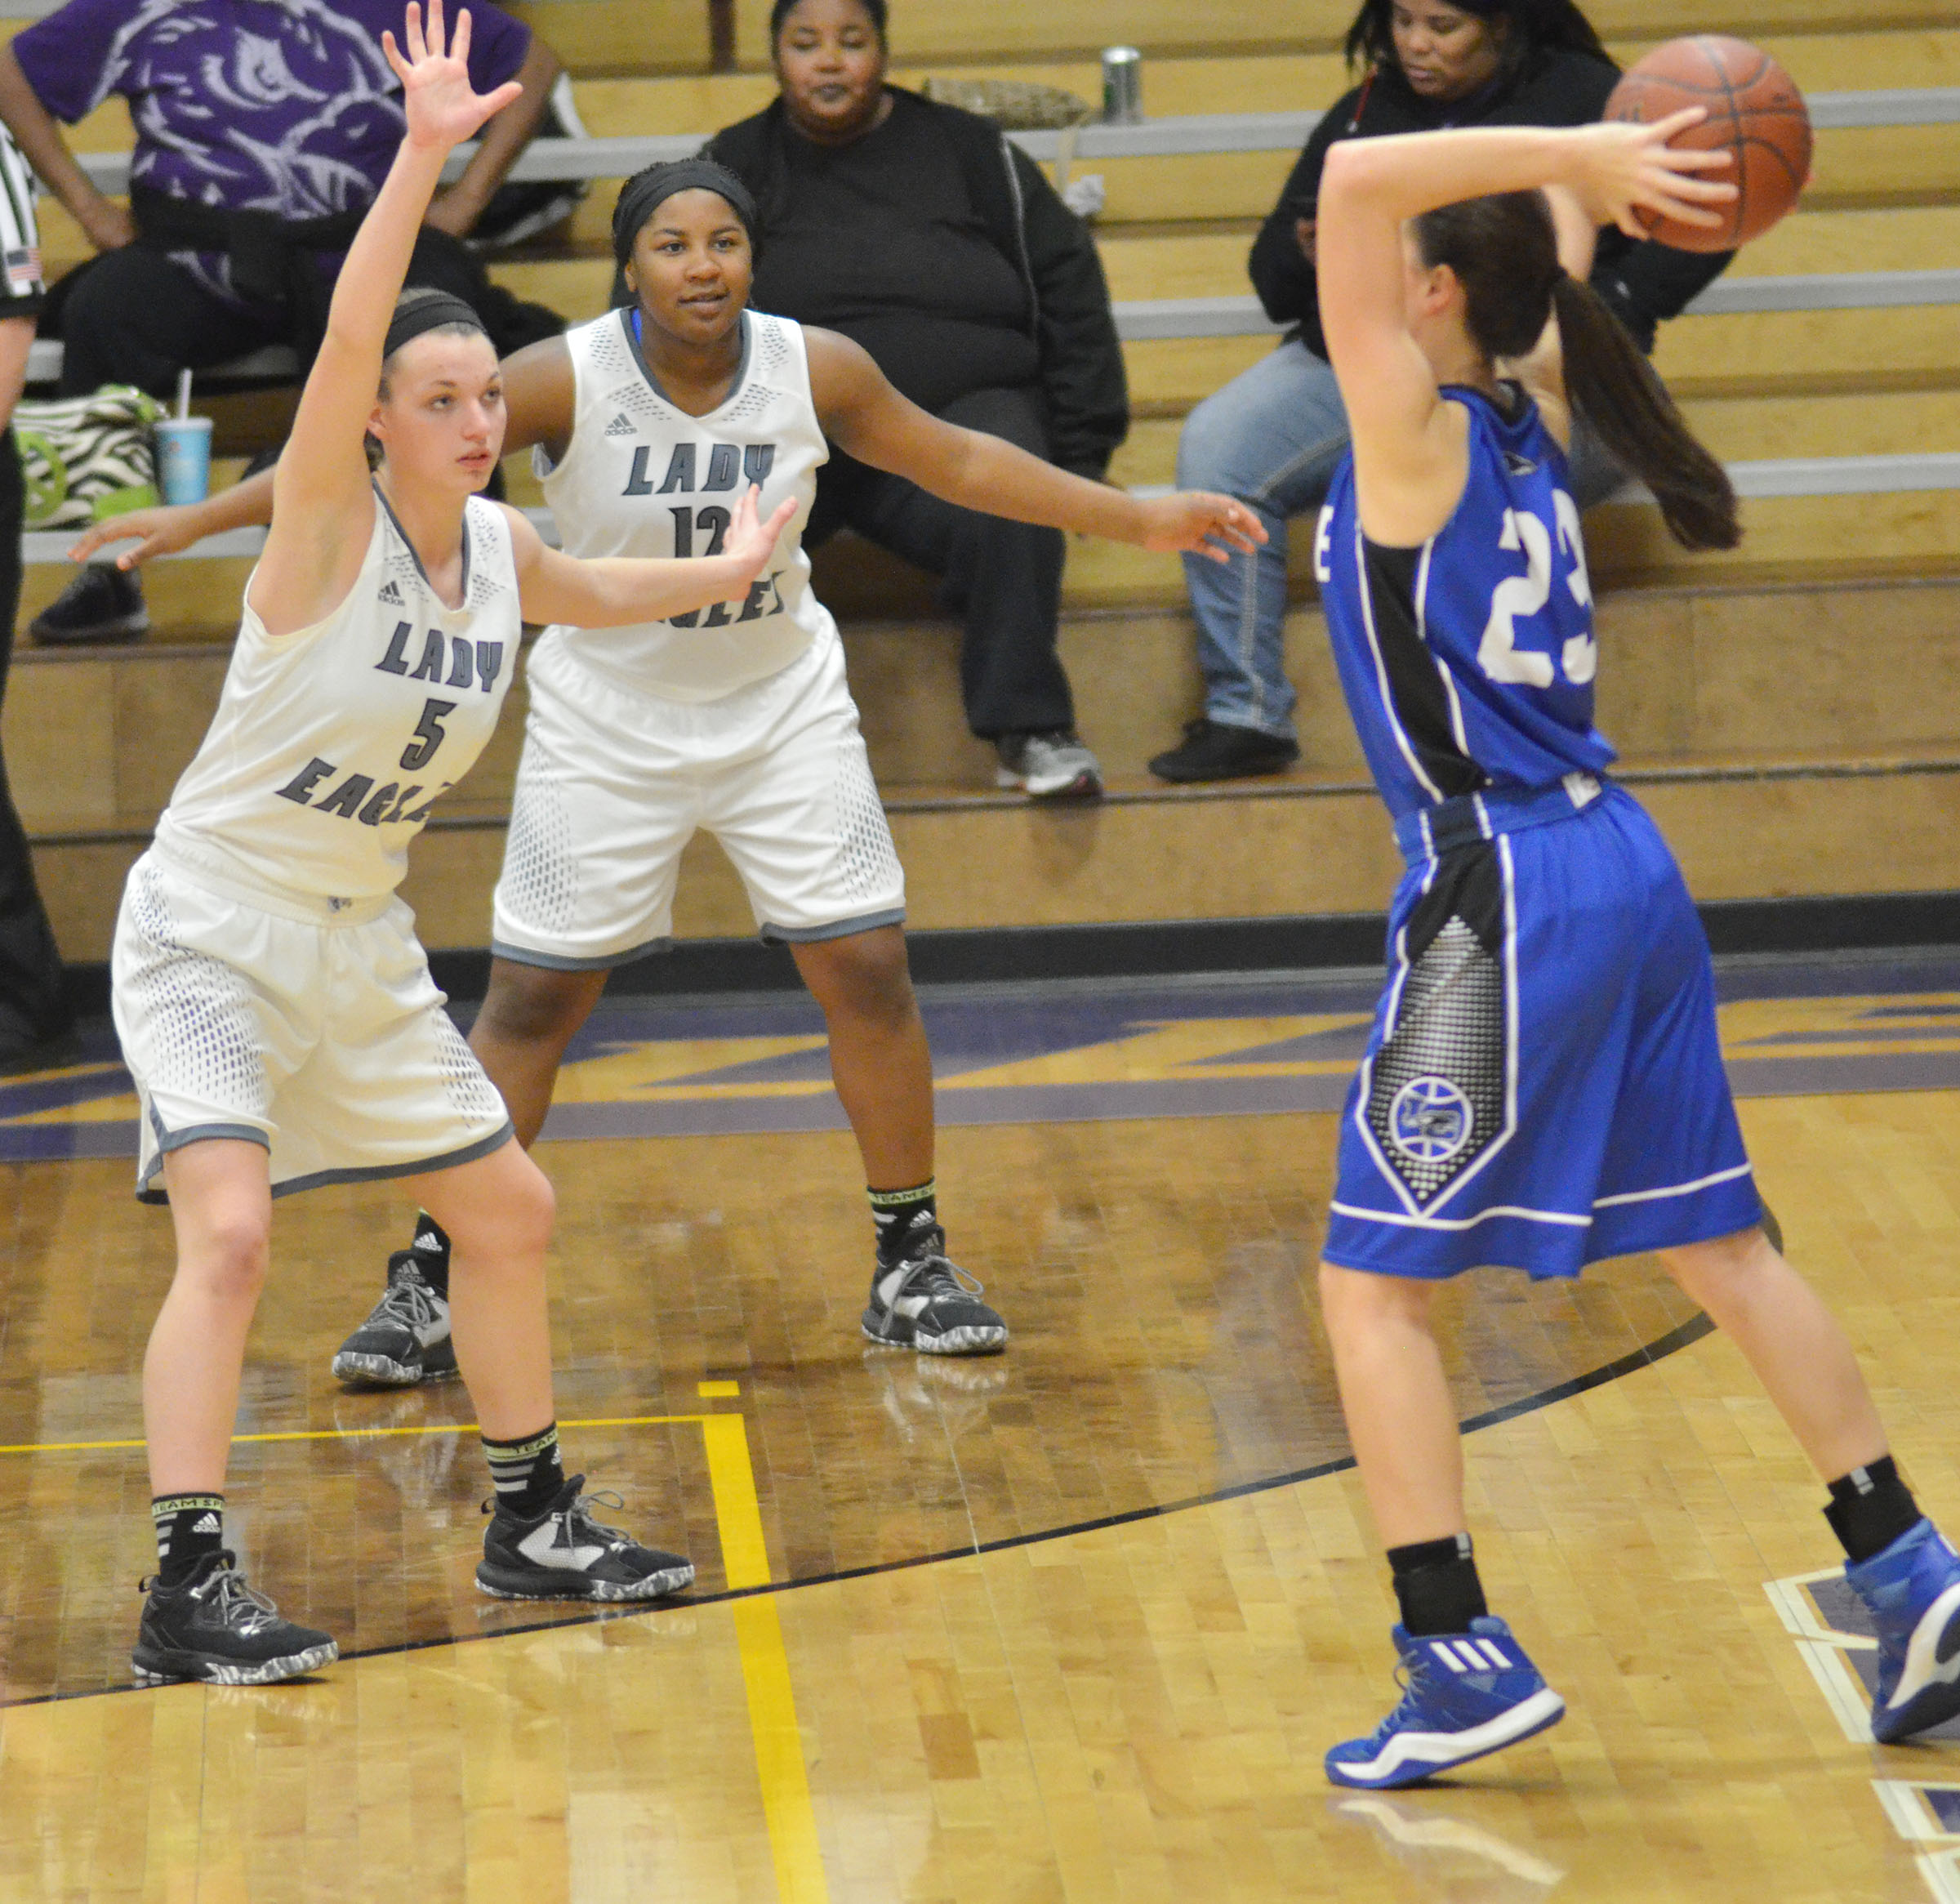 CHS senior Caylie Blair, at left, and junior Kiyah Barnett play defense.